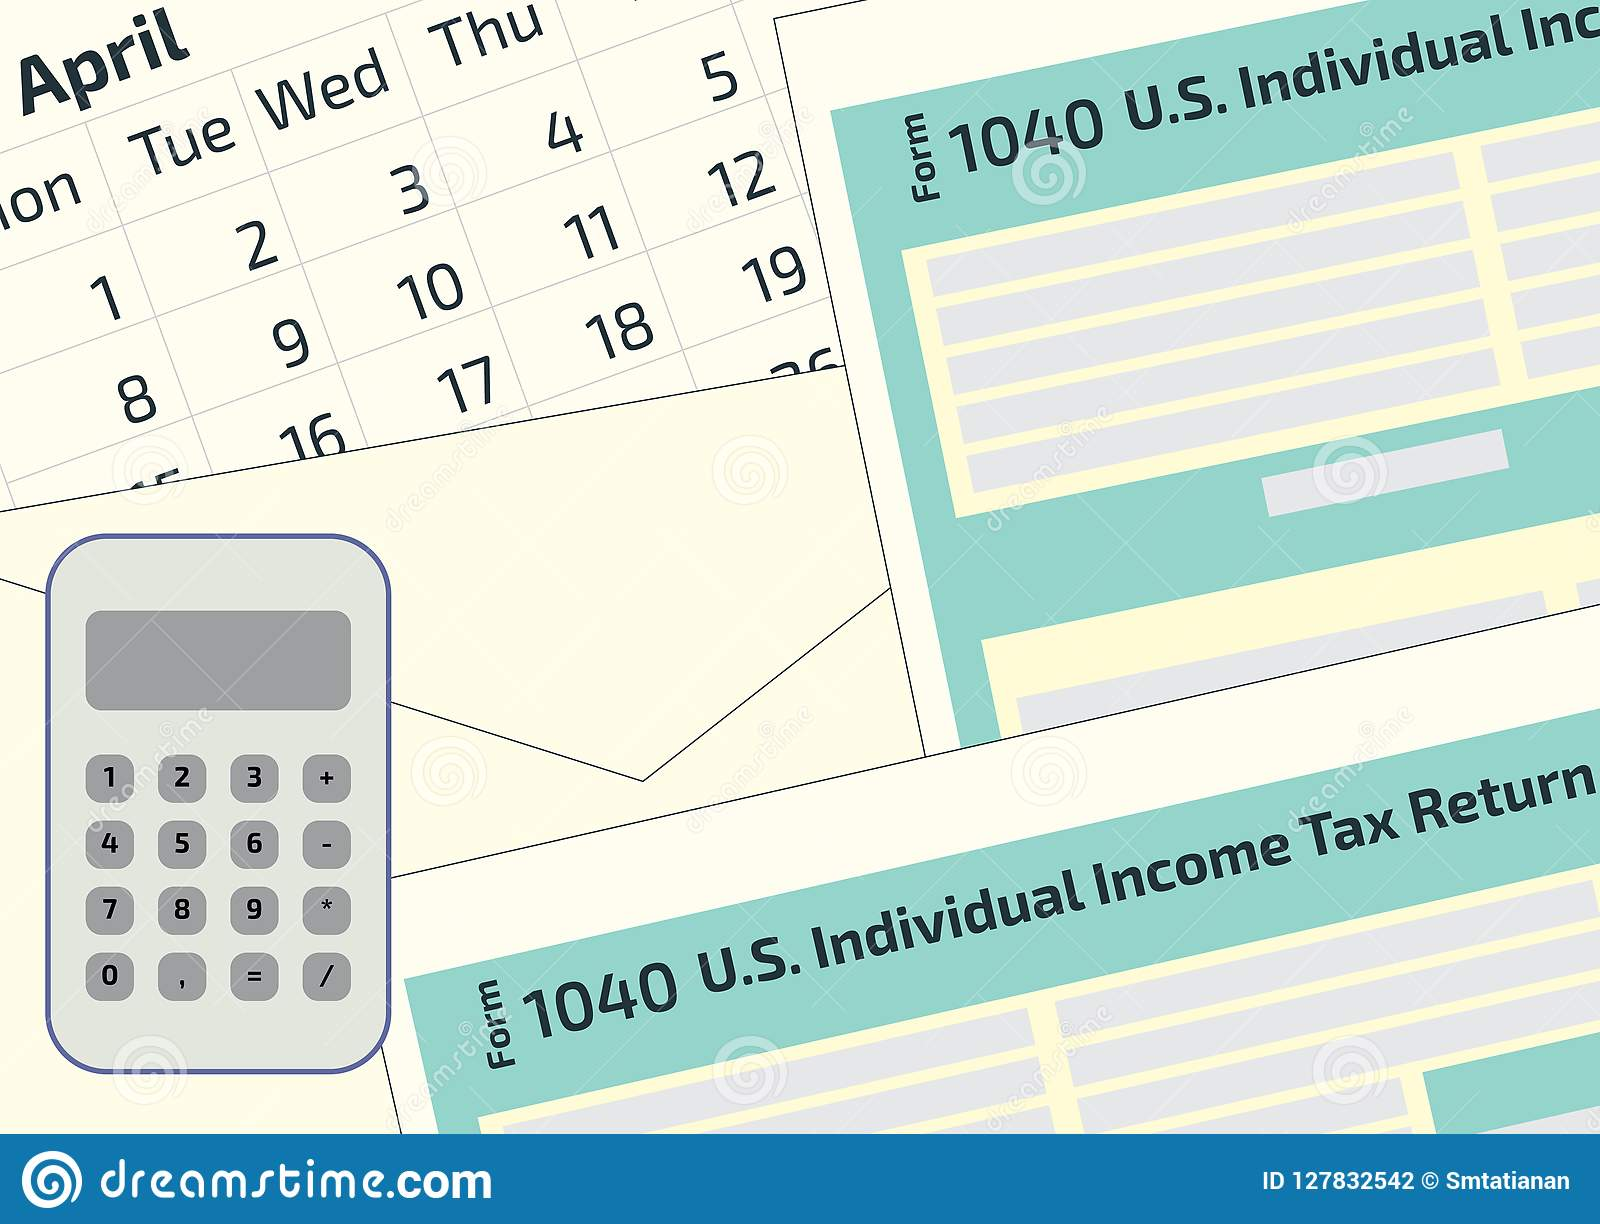 2019, 2018 Tax Form 1040 And The Envelope, A Calendar And